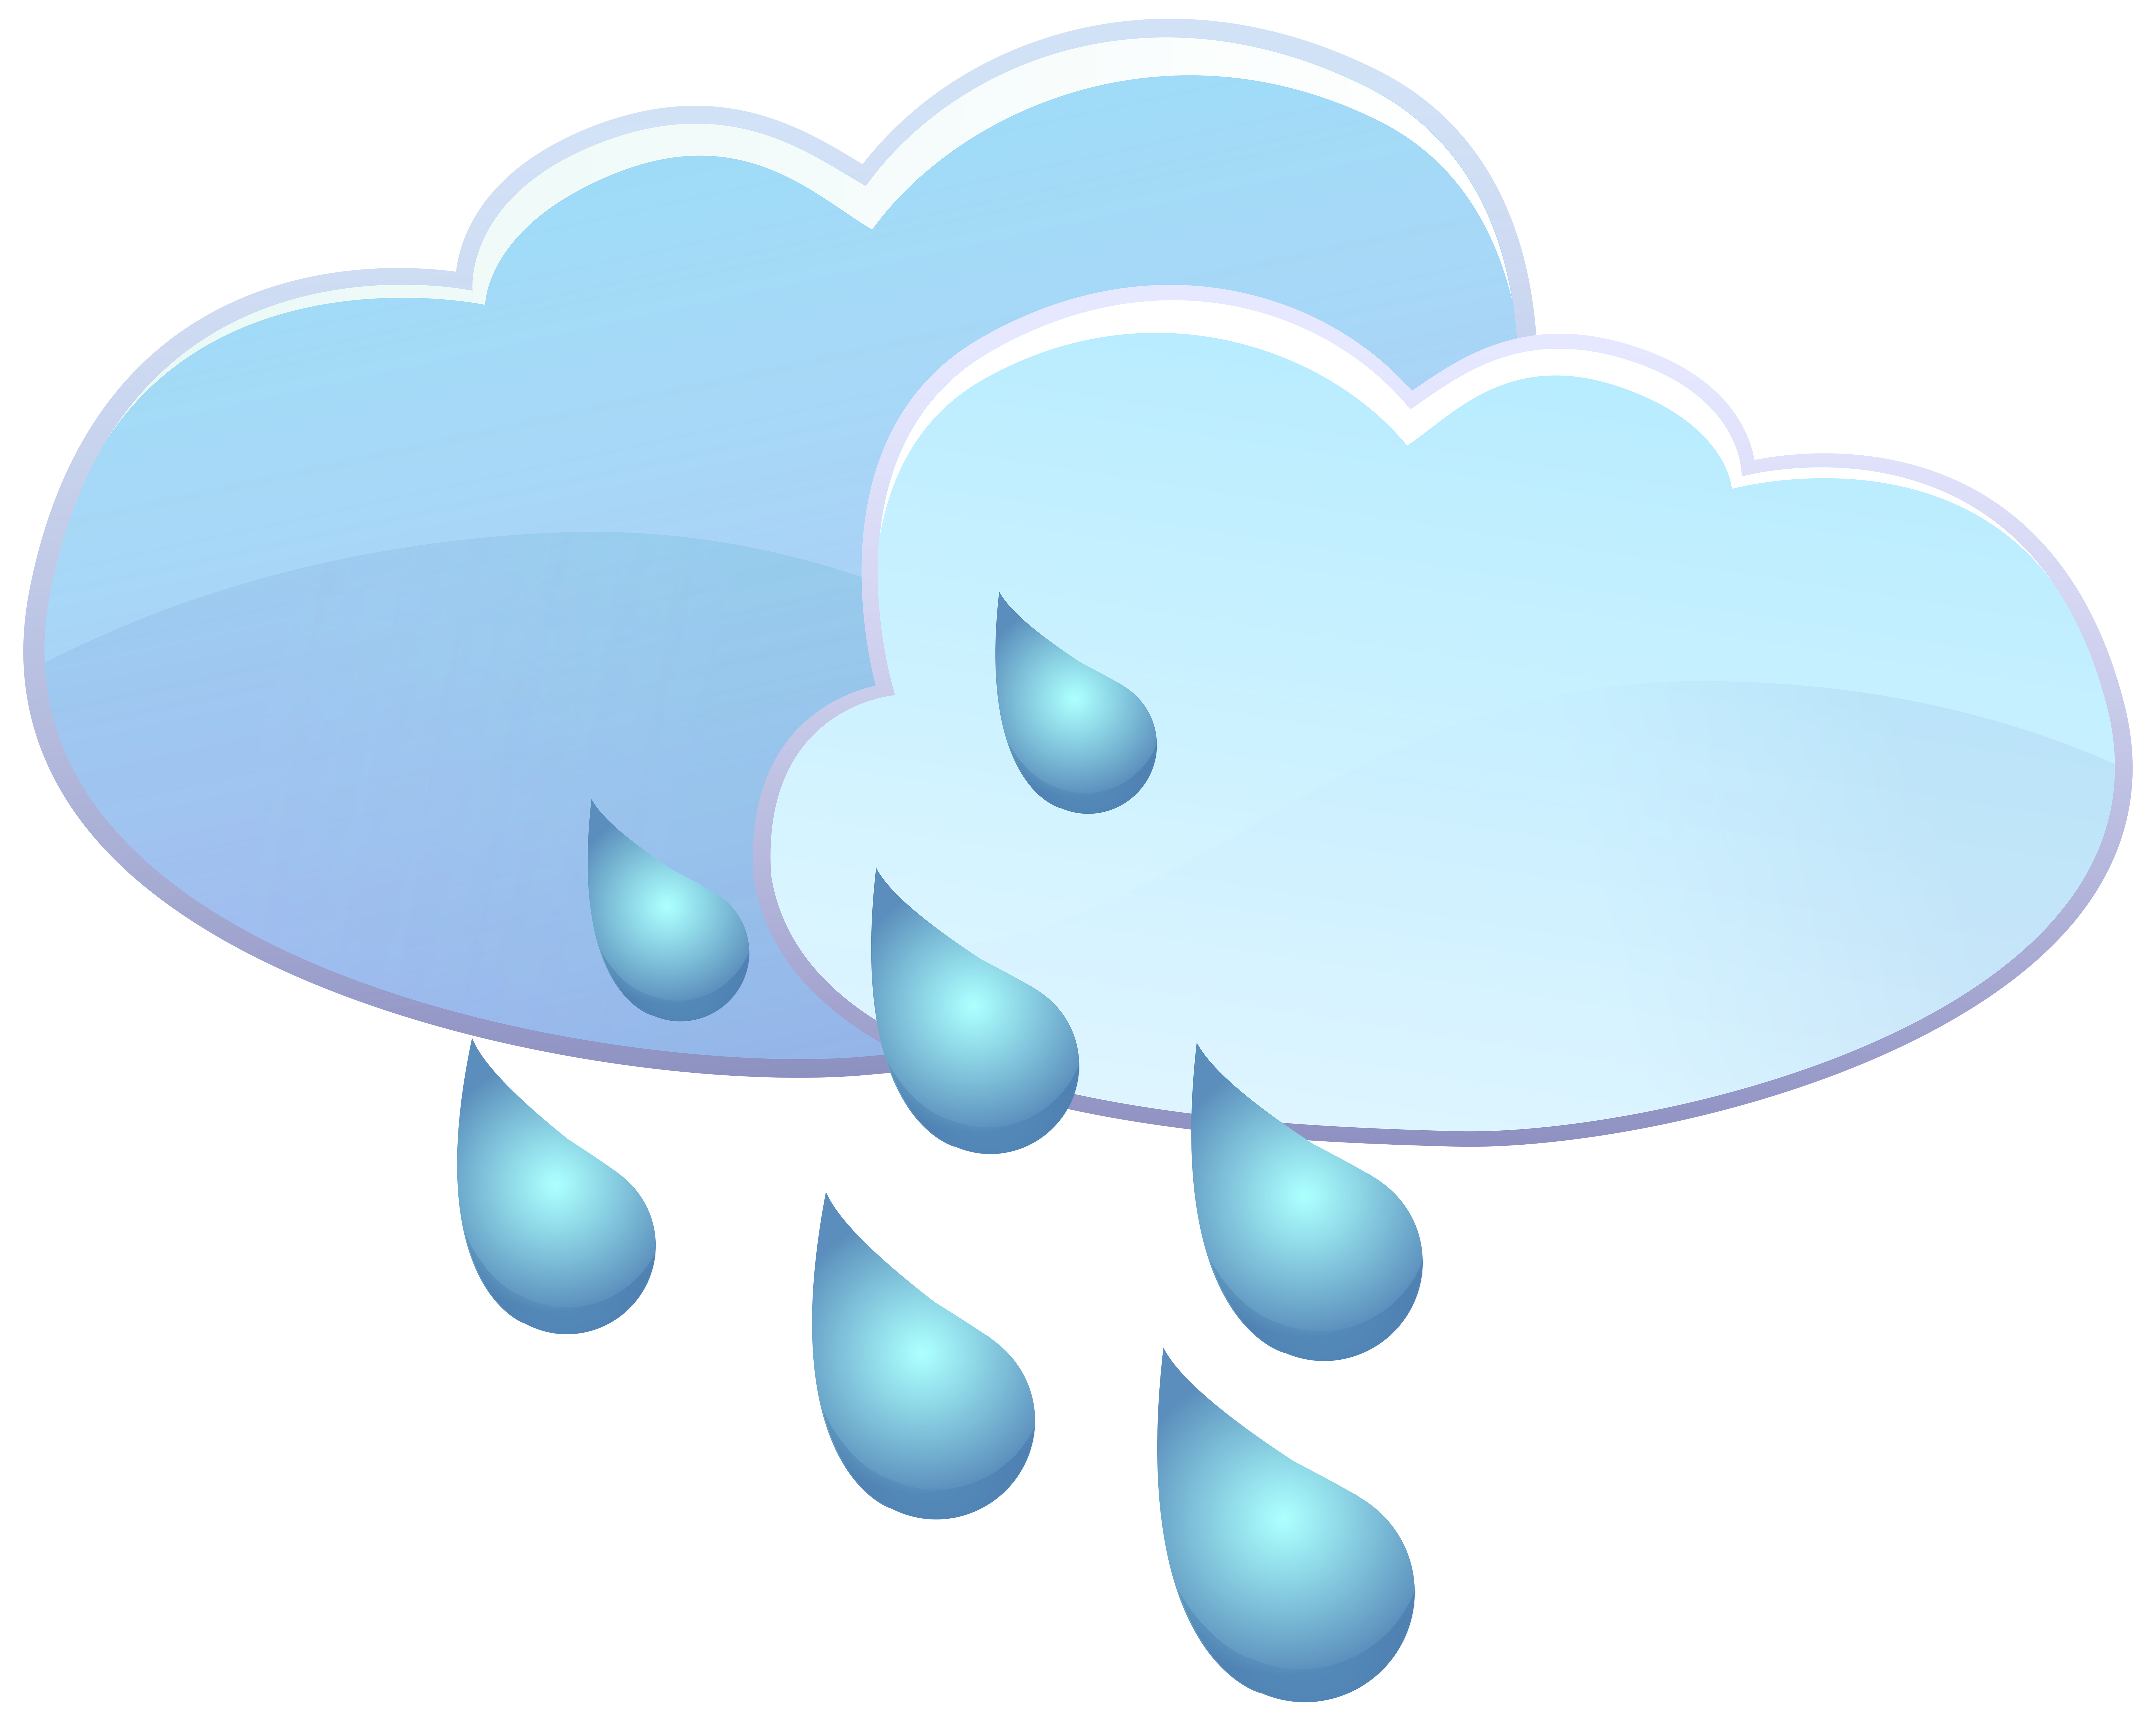 And rain drops icon. Clouds clipart weather